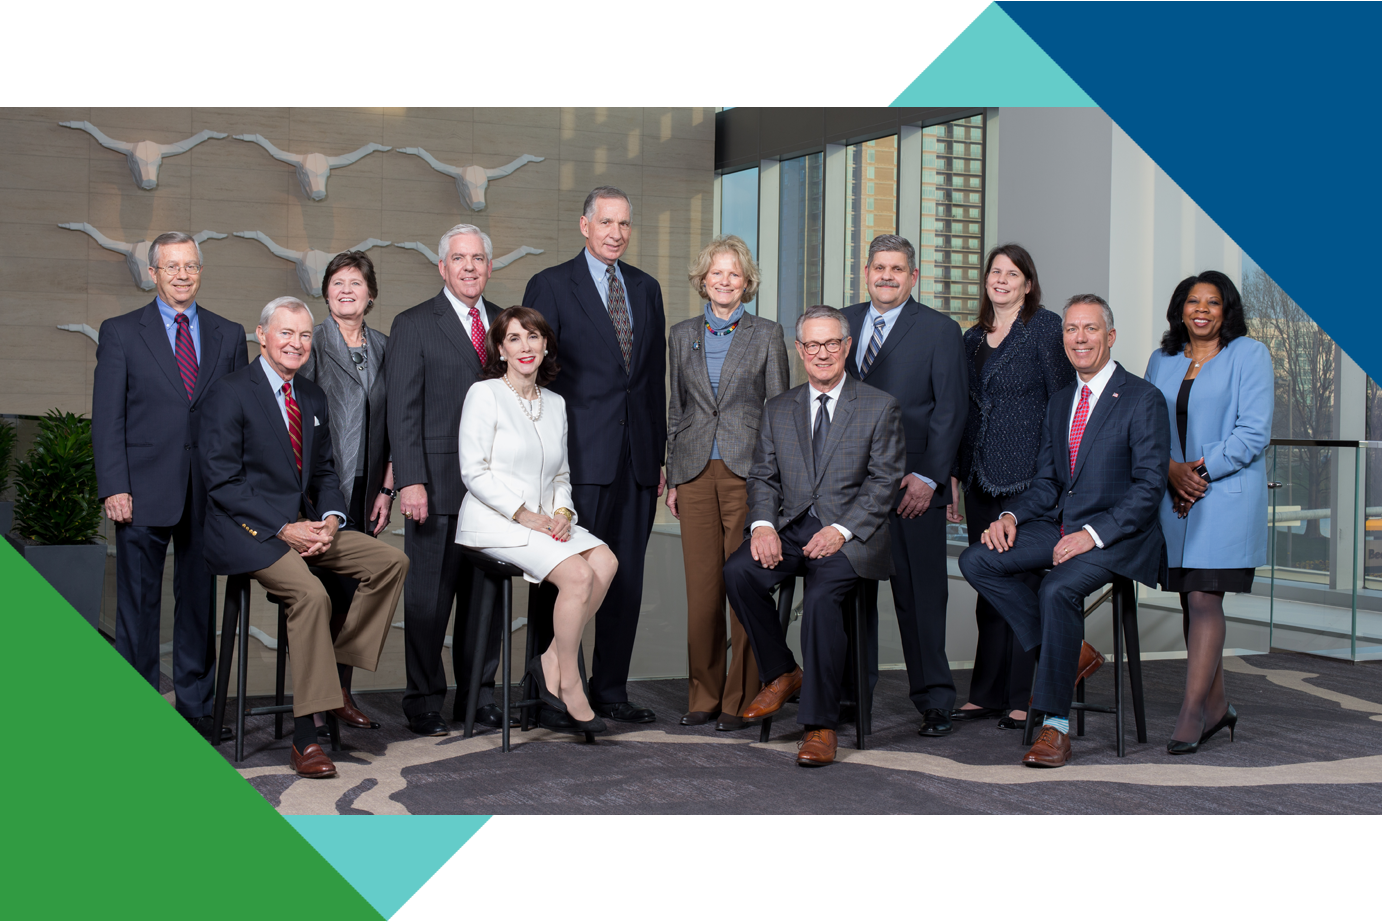 Globe Life Inc. Board of Directors